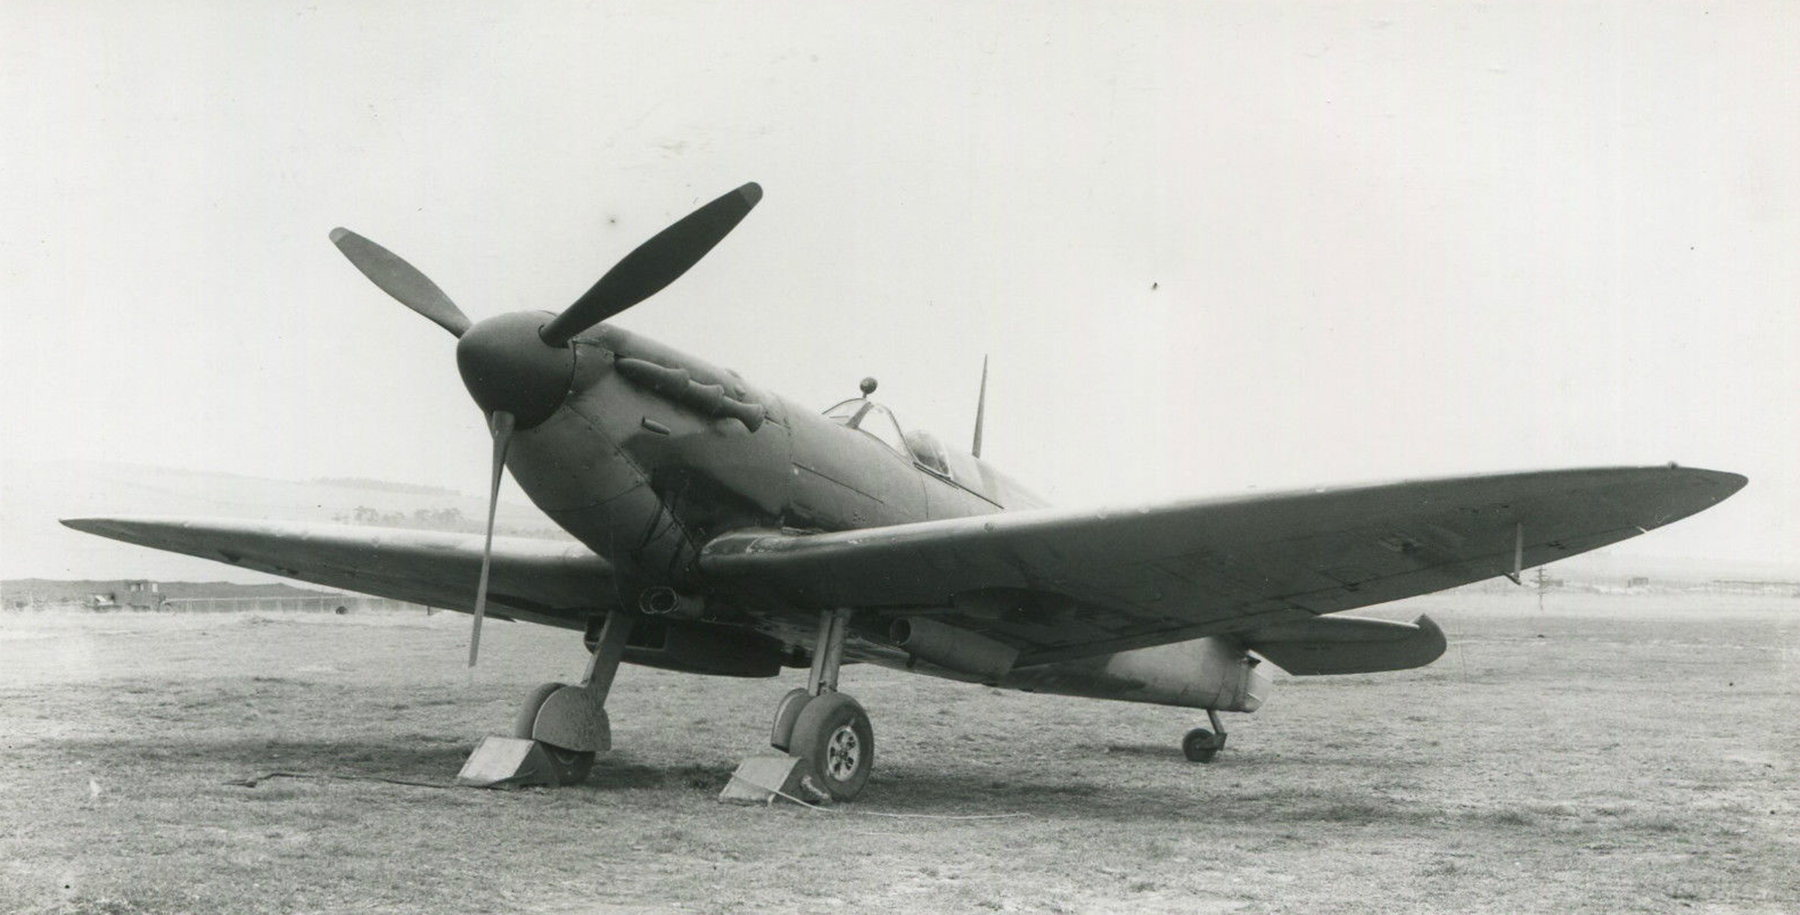 Spitfire PR8 Proyotype climb level speed and diving trials L1004 Mar 1943 02